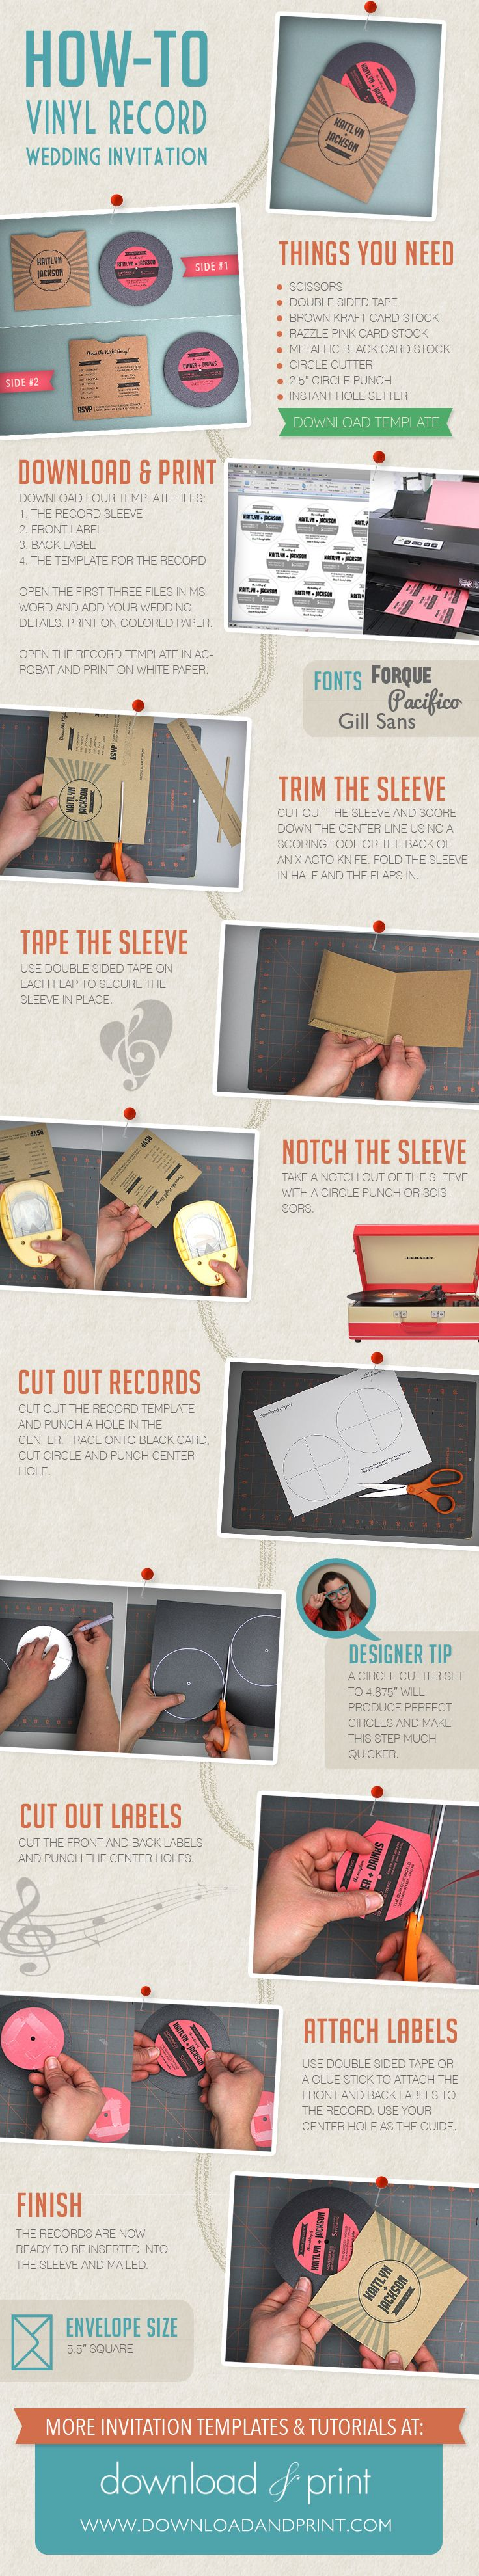 How To DIY a vinyl record wedding invitation